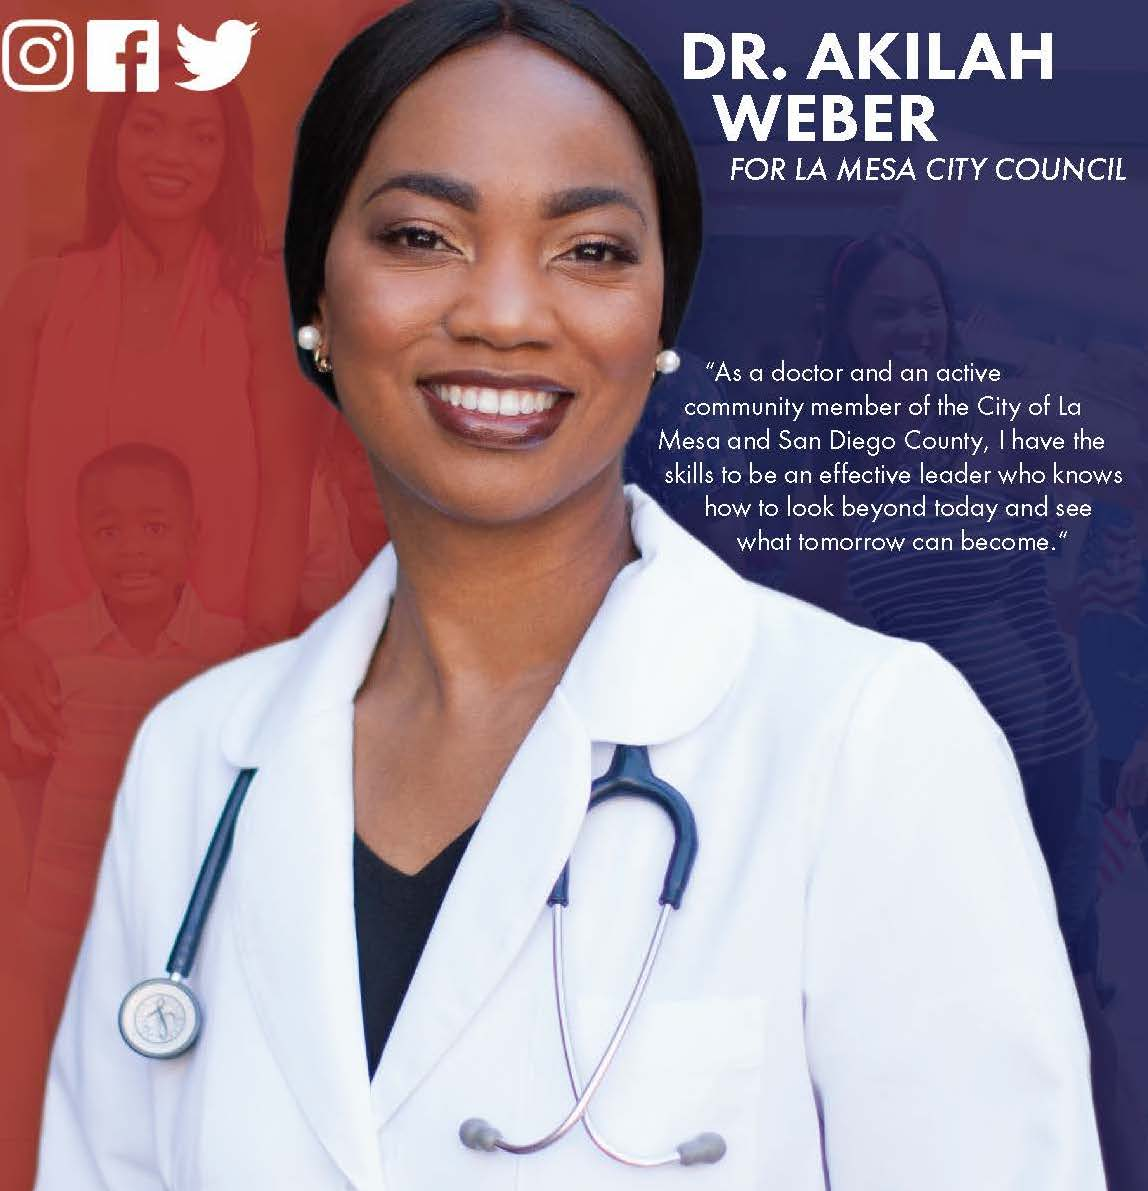 A mailer created for Dr. Akilah Weber's City Council campaign.